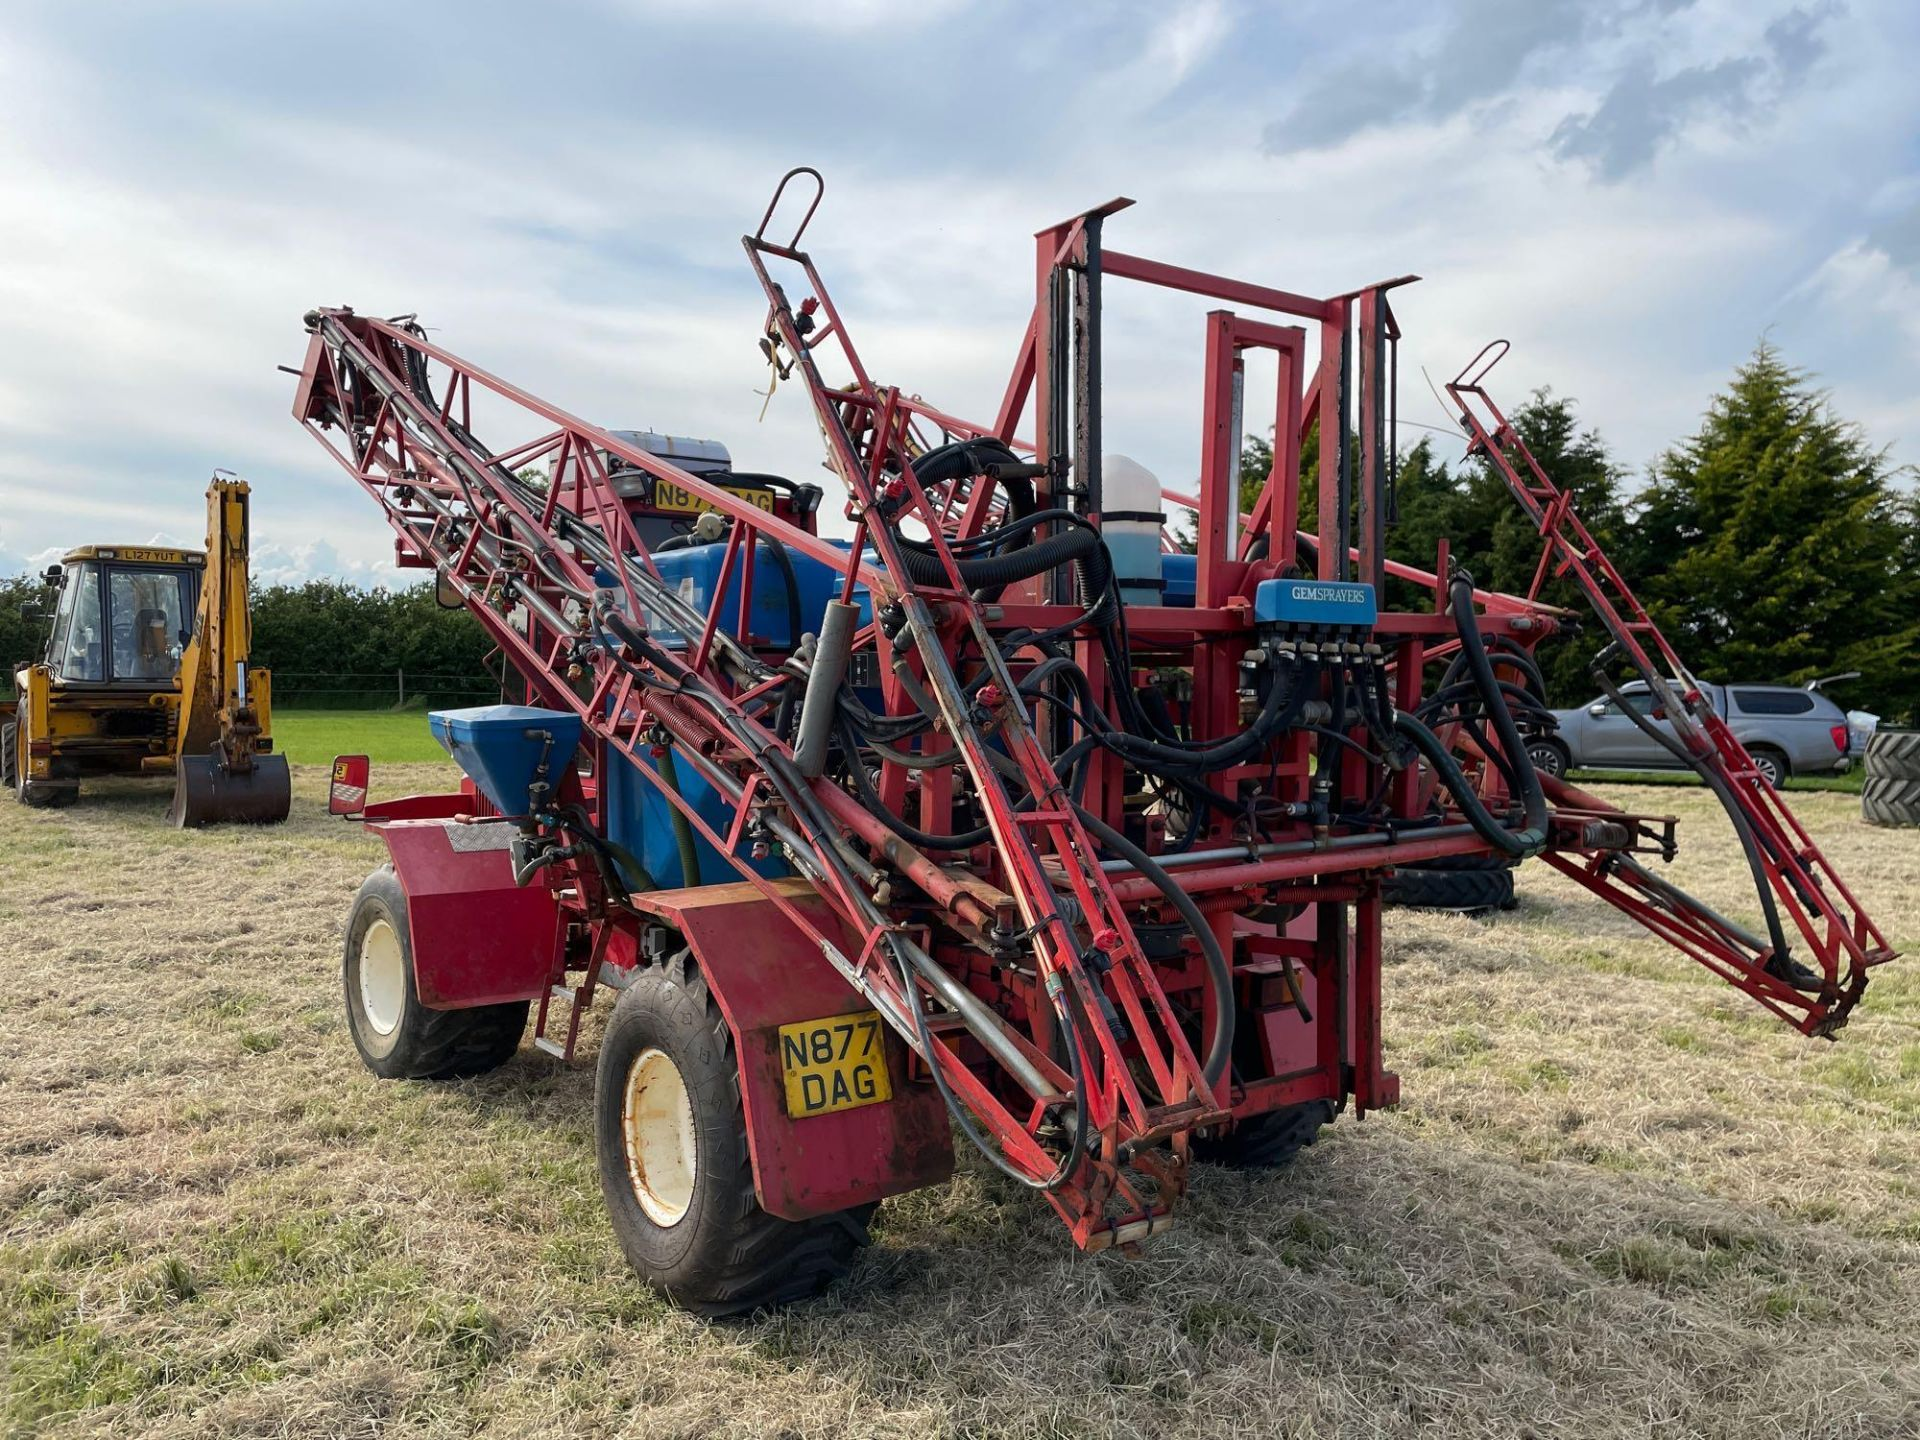 1995 Frazier Agri-Buggy SD with GEM 24m self propelled sprayer, 1500l tank on 38x20.00-16 wheels and - Image 27 of 27